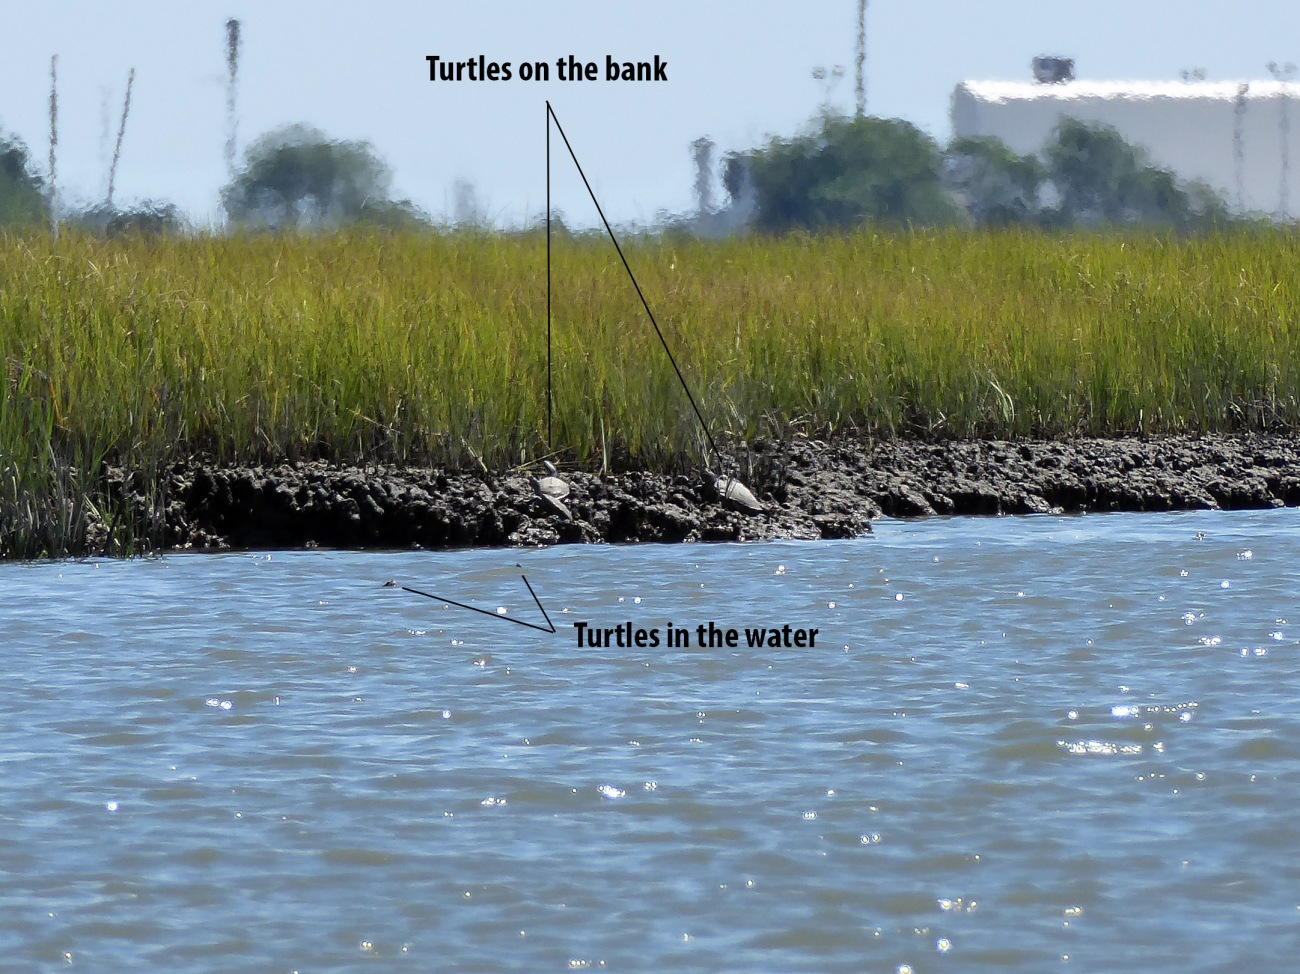 20170806_121615_Turtle swarm on the banks - Copy